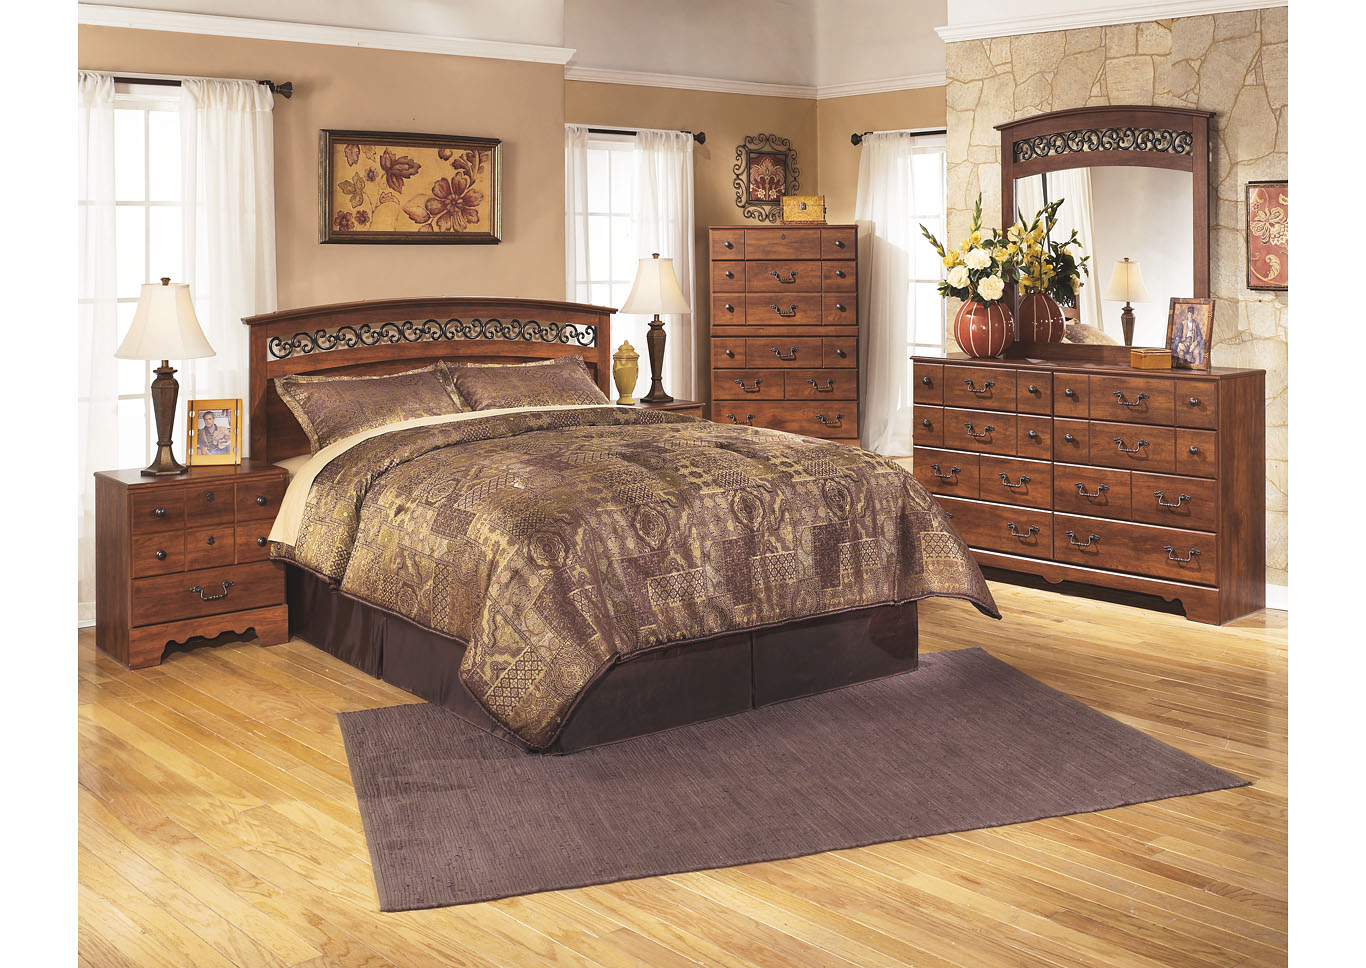 Timberline Queen/Full Panel Headboard w/Dresser, Mirror, Drawer Chest & Nightstand,Signature Design By Ashley